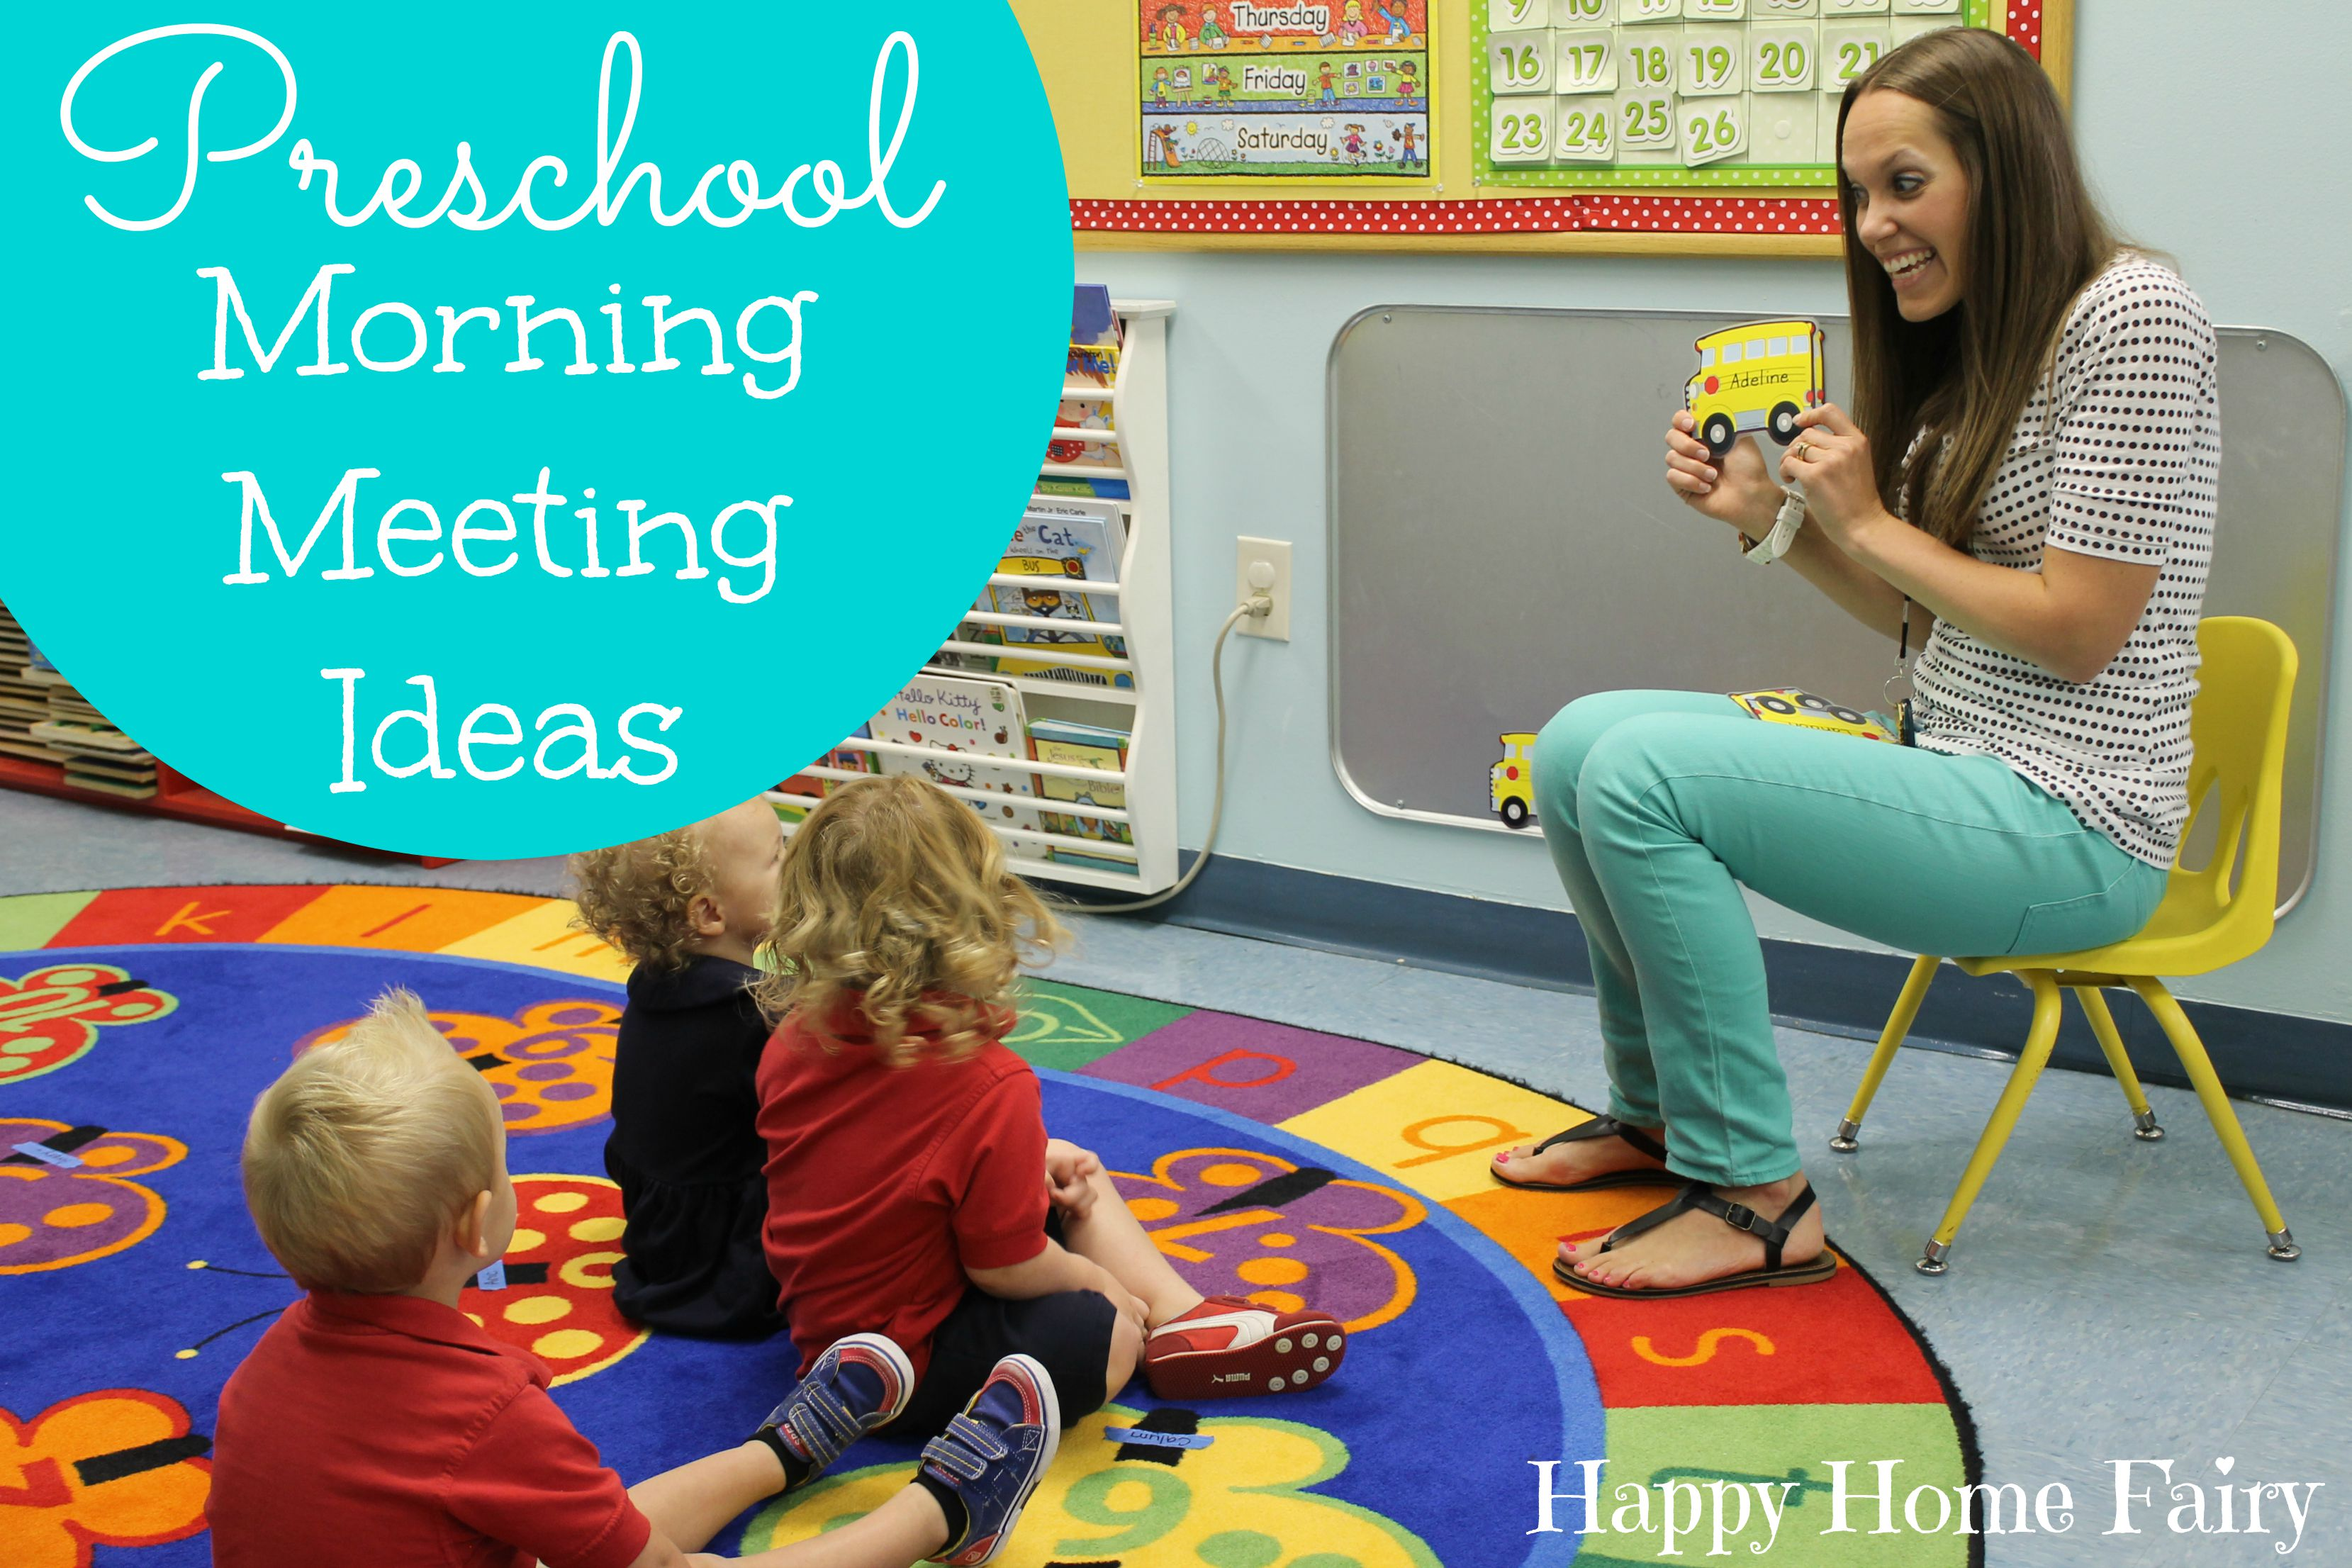 Preschool Morning Meeting Ideas